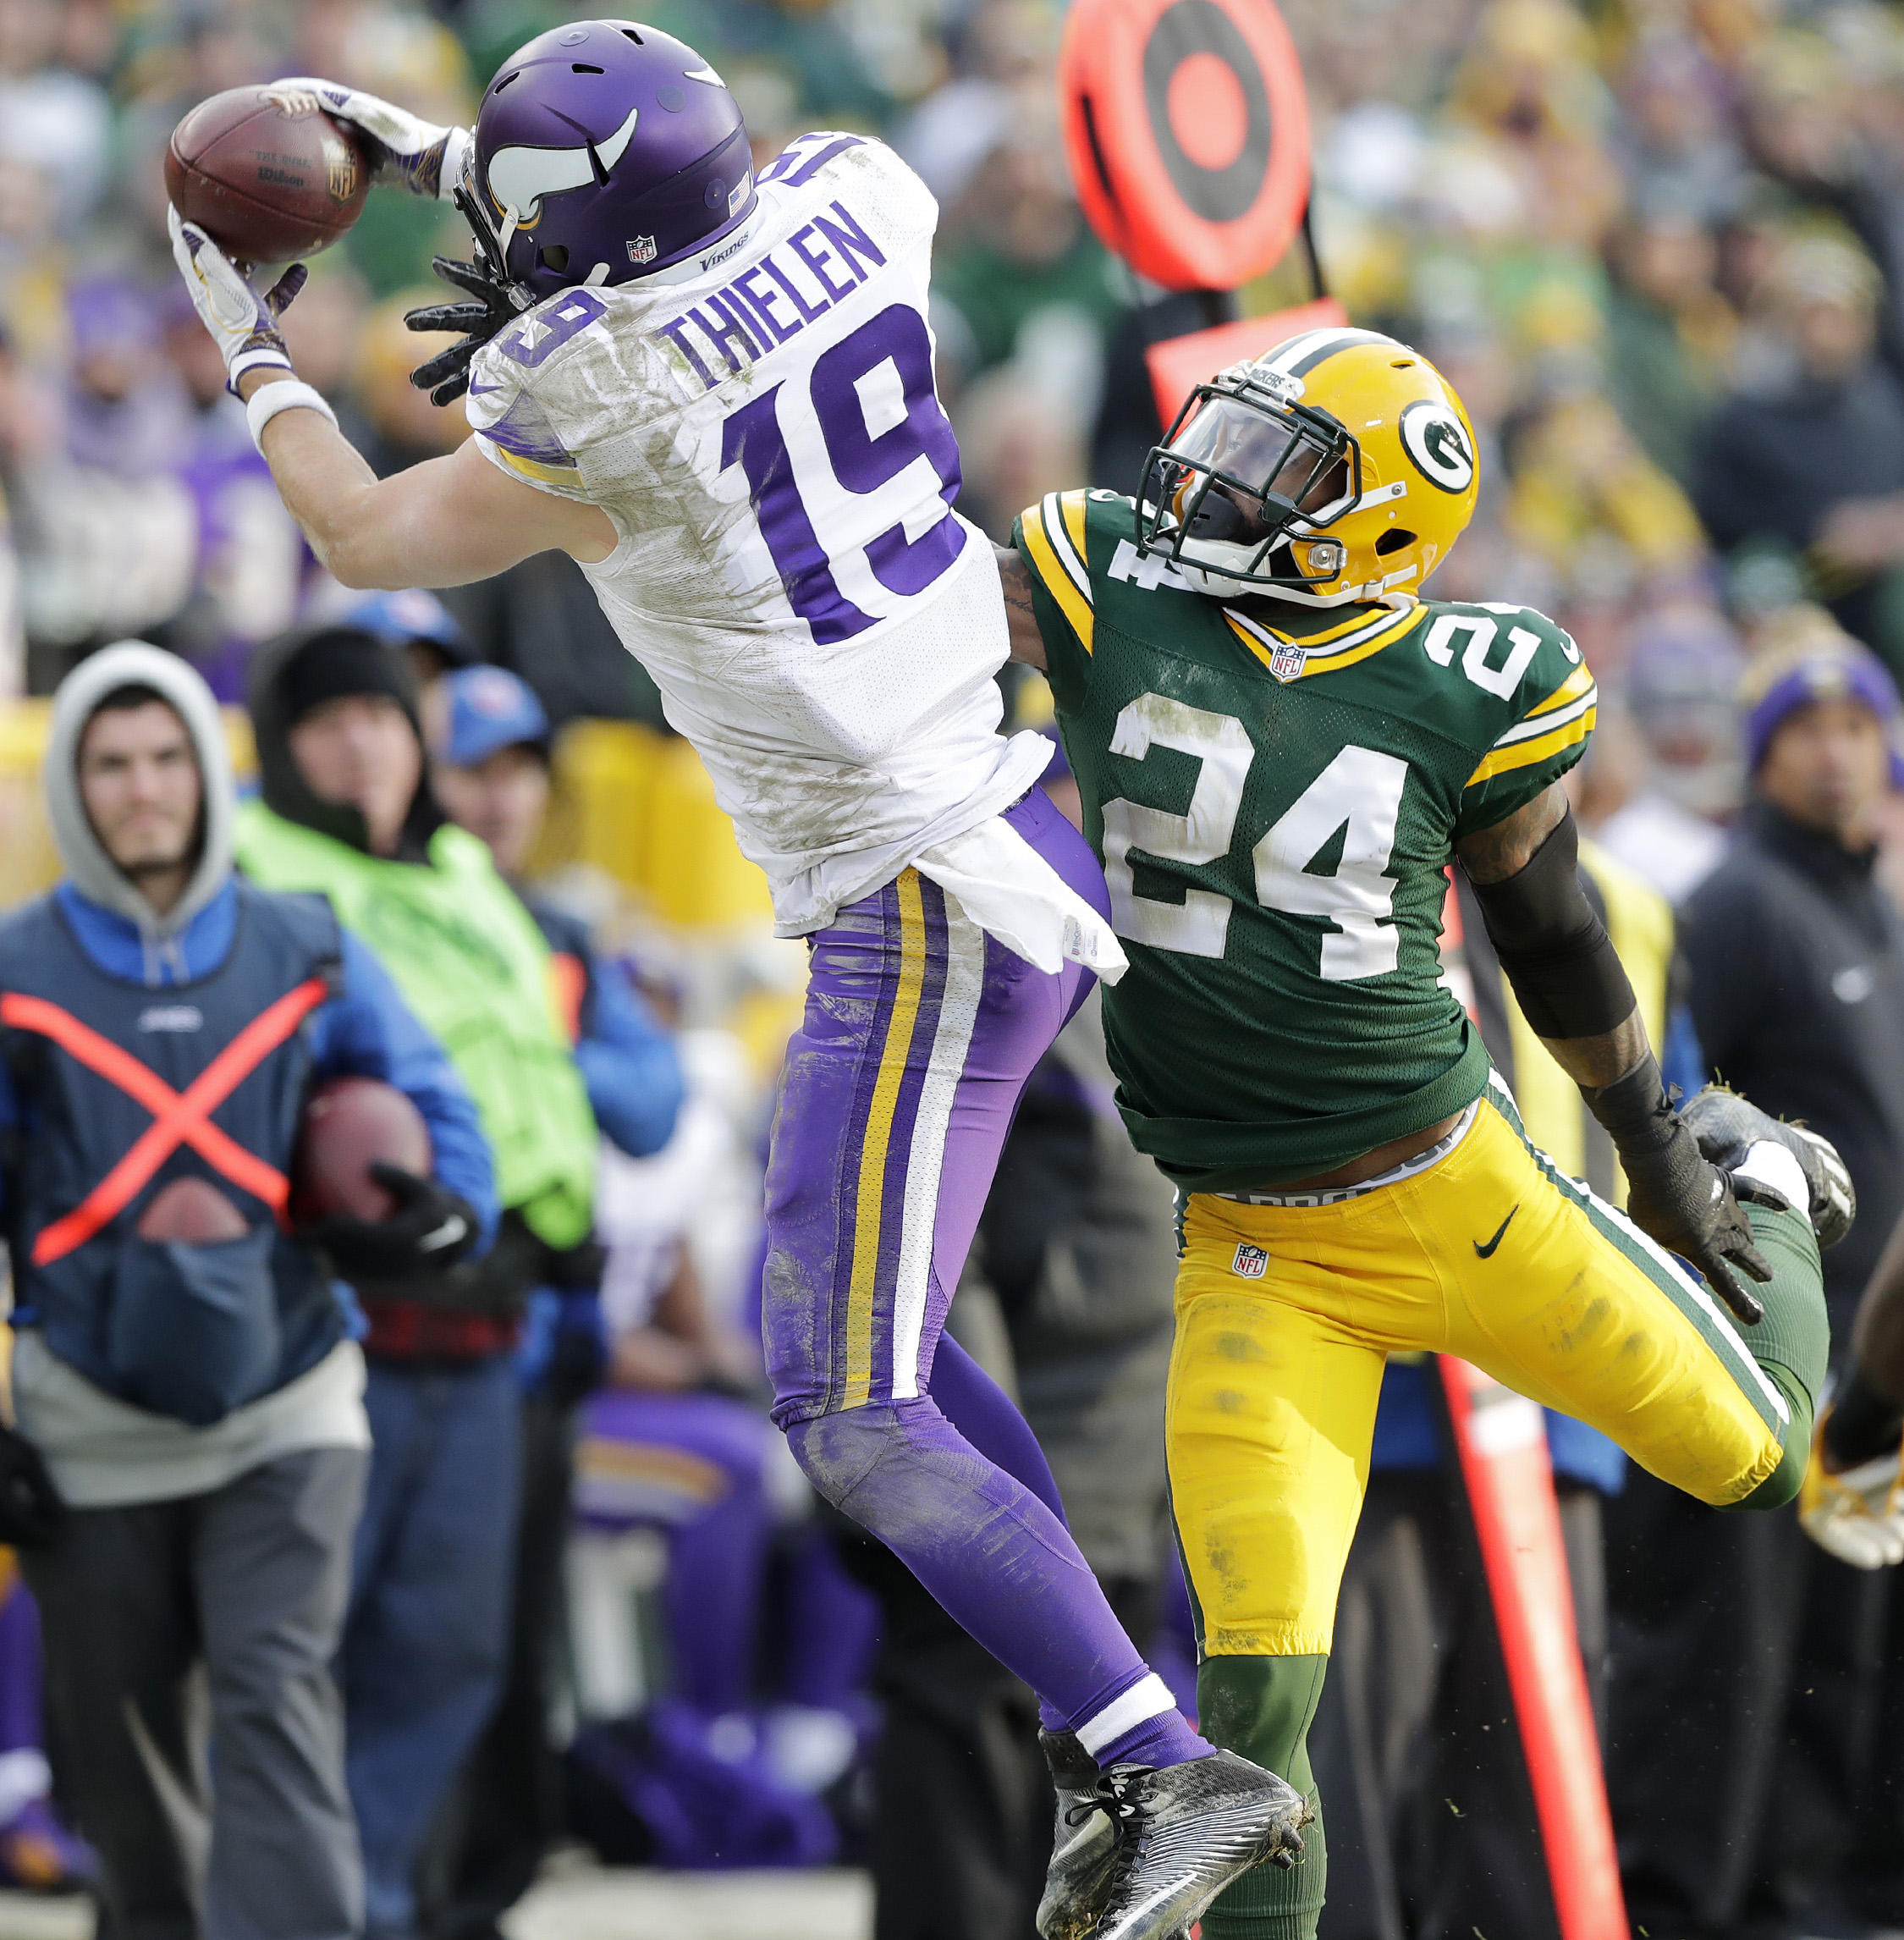 9767412-nfl-minnesota-vikings-at-green-bay-packers